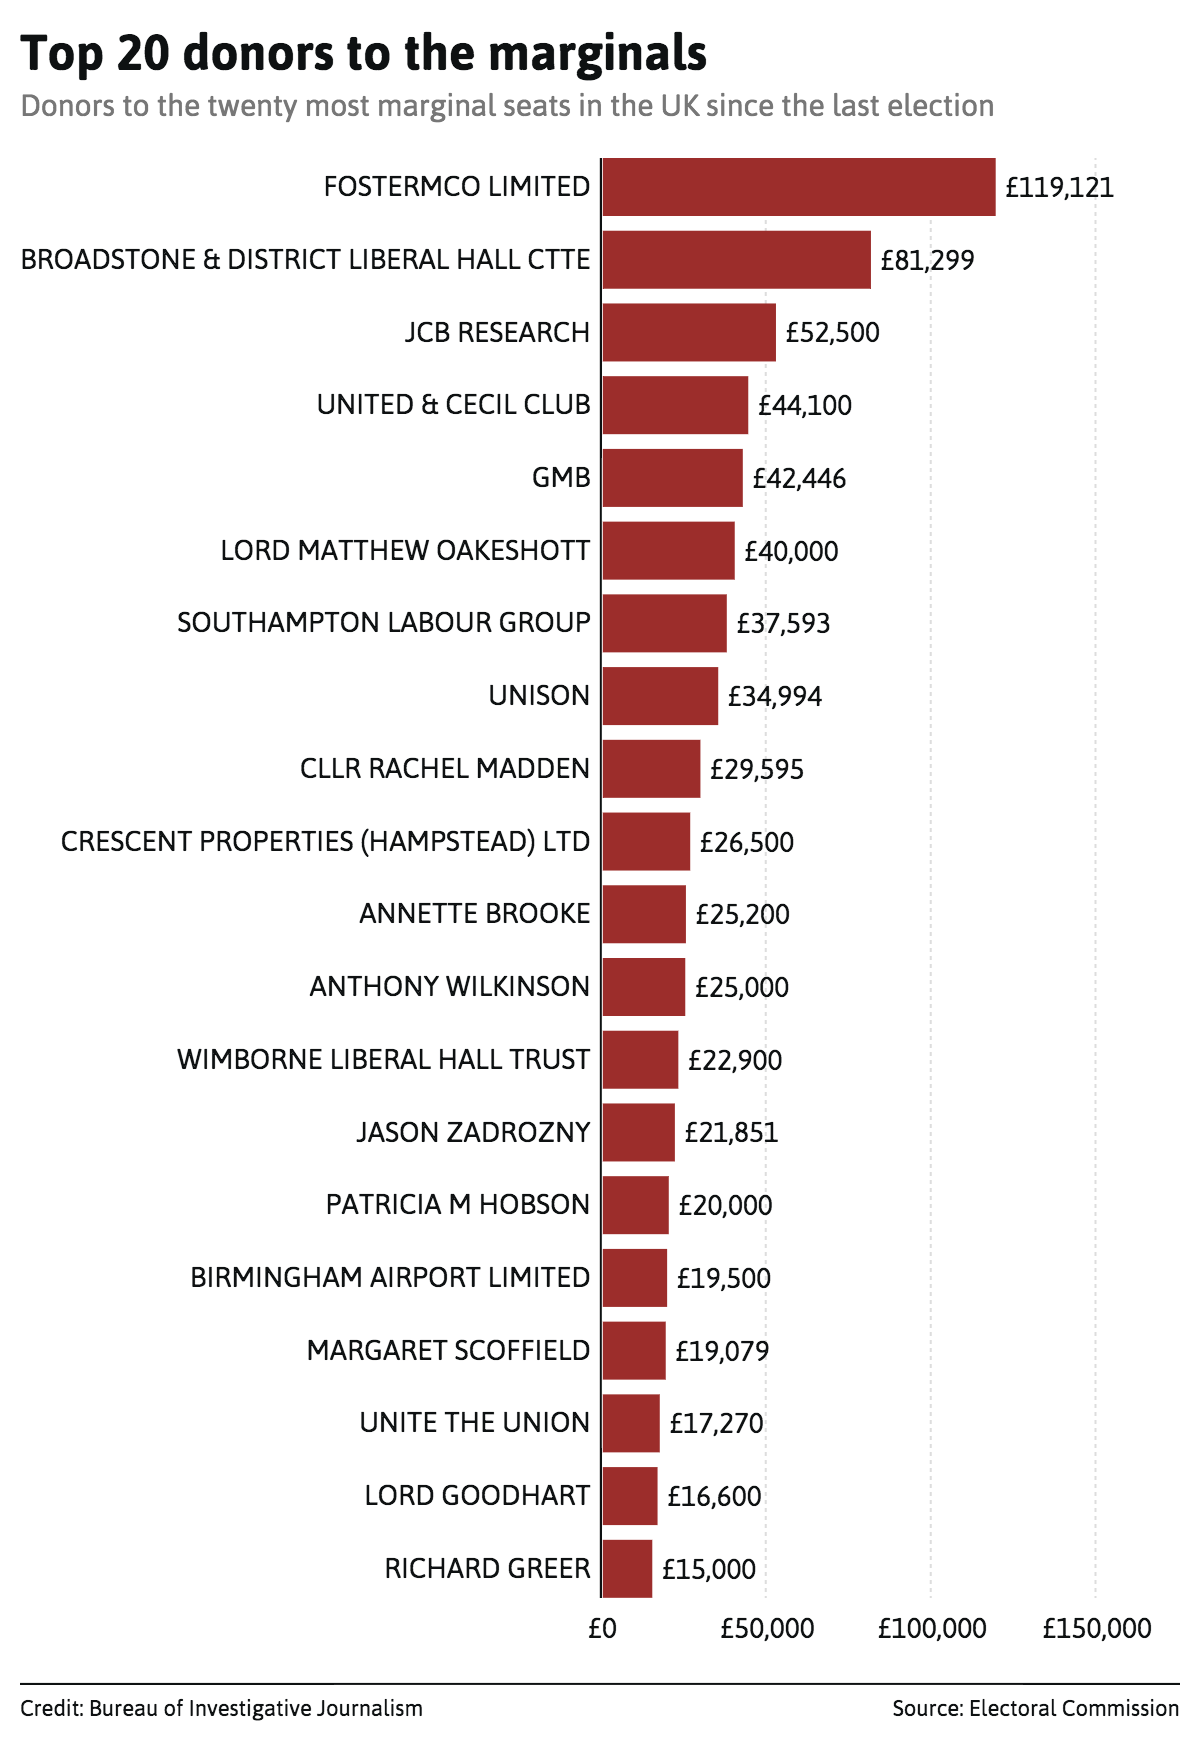 top-20-donors-to-the-marginals